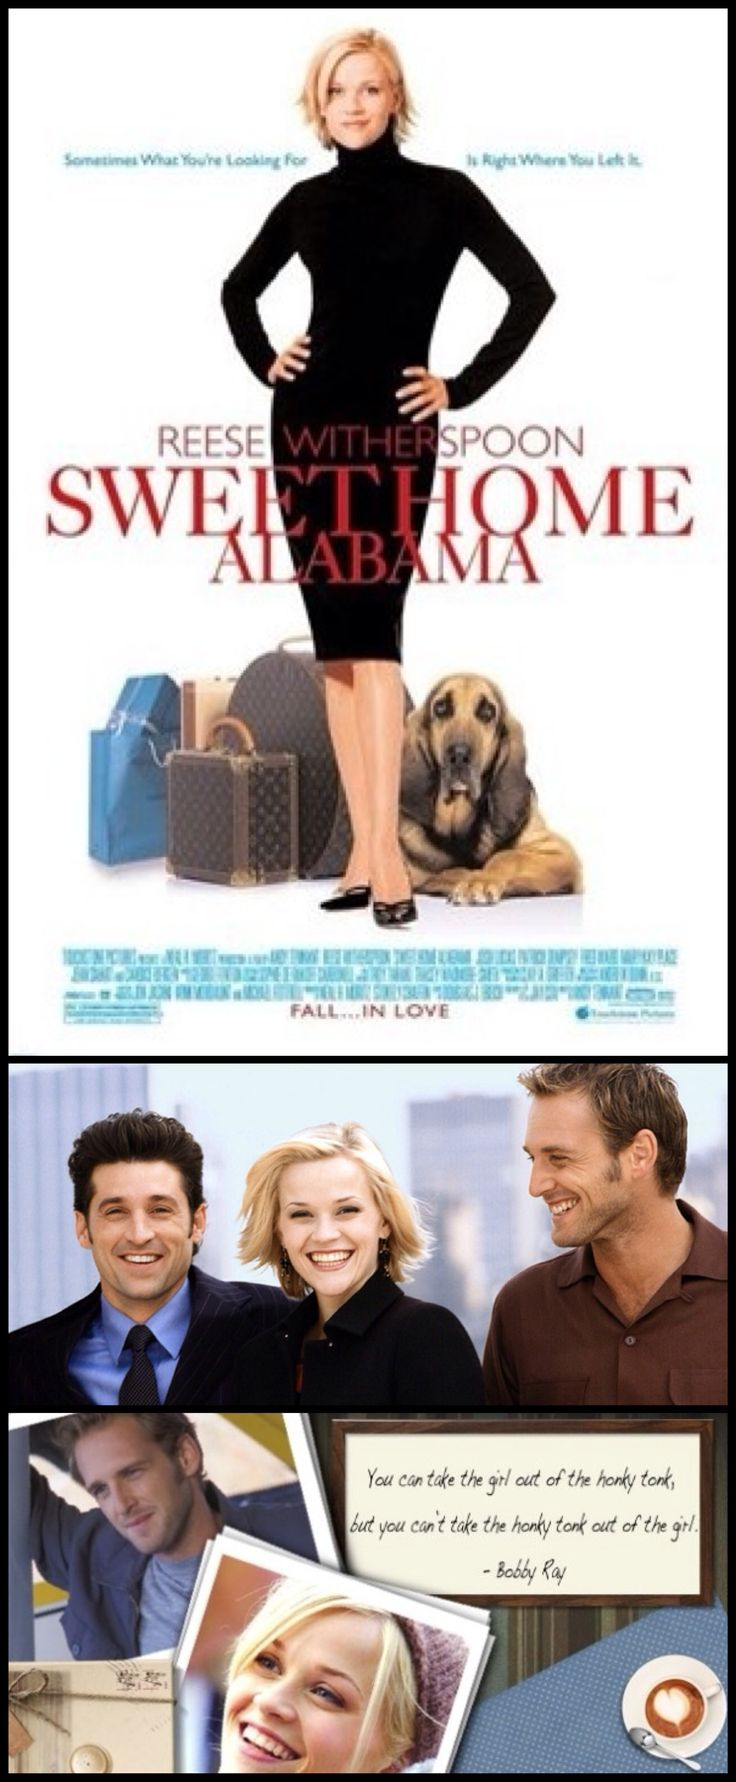 Sweet Home Alabama (2002).        Cast:   Reese Witherspoon-Melanie,  Josh Lucas-Jake,  Patrick Dempsey-Andrew,  Candice Bergen-Kate.